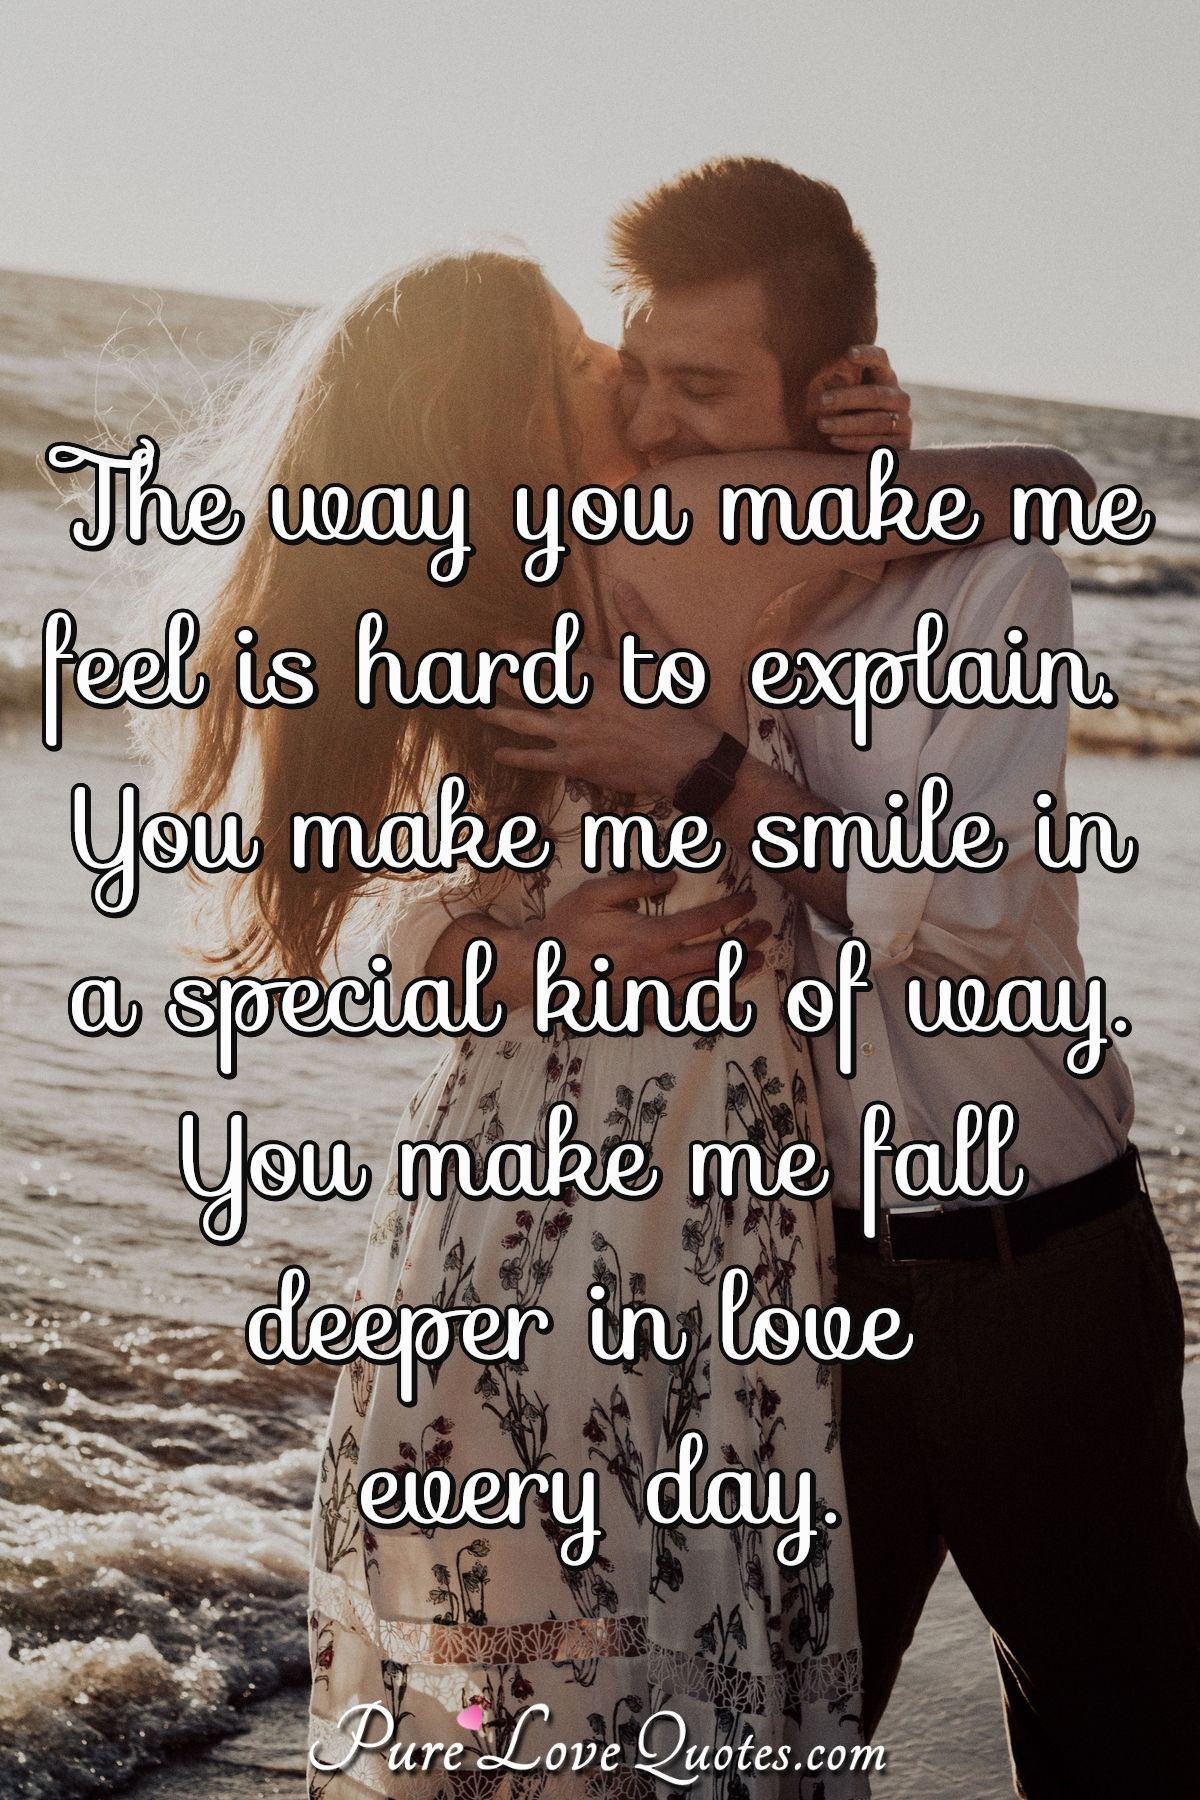 Love Quotes from PureLoveQuotes.com in 2020 | My feelings